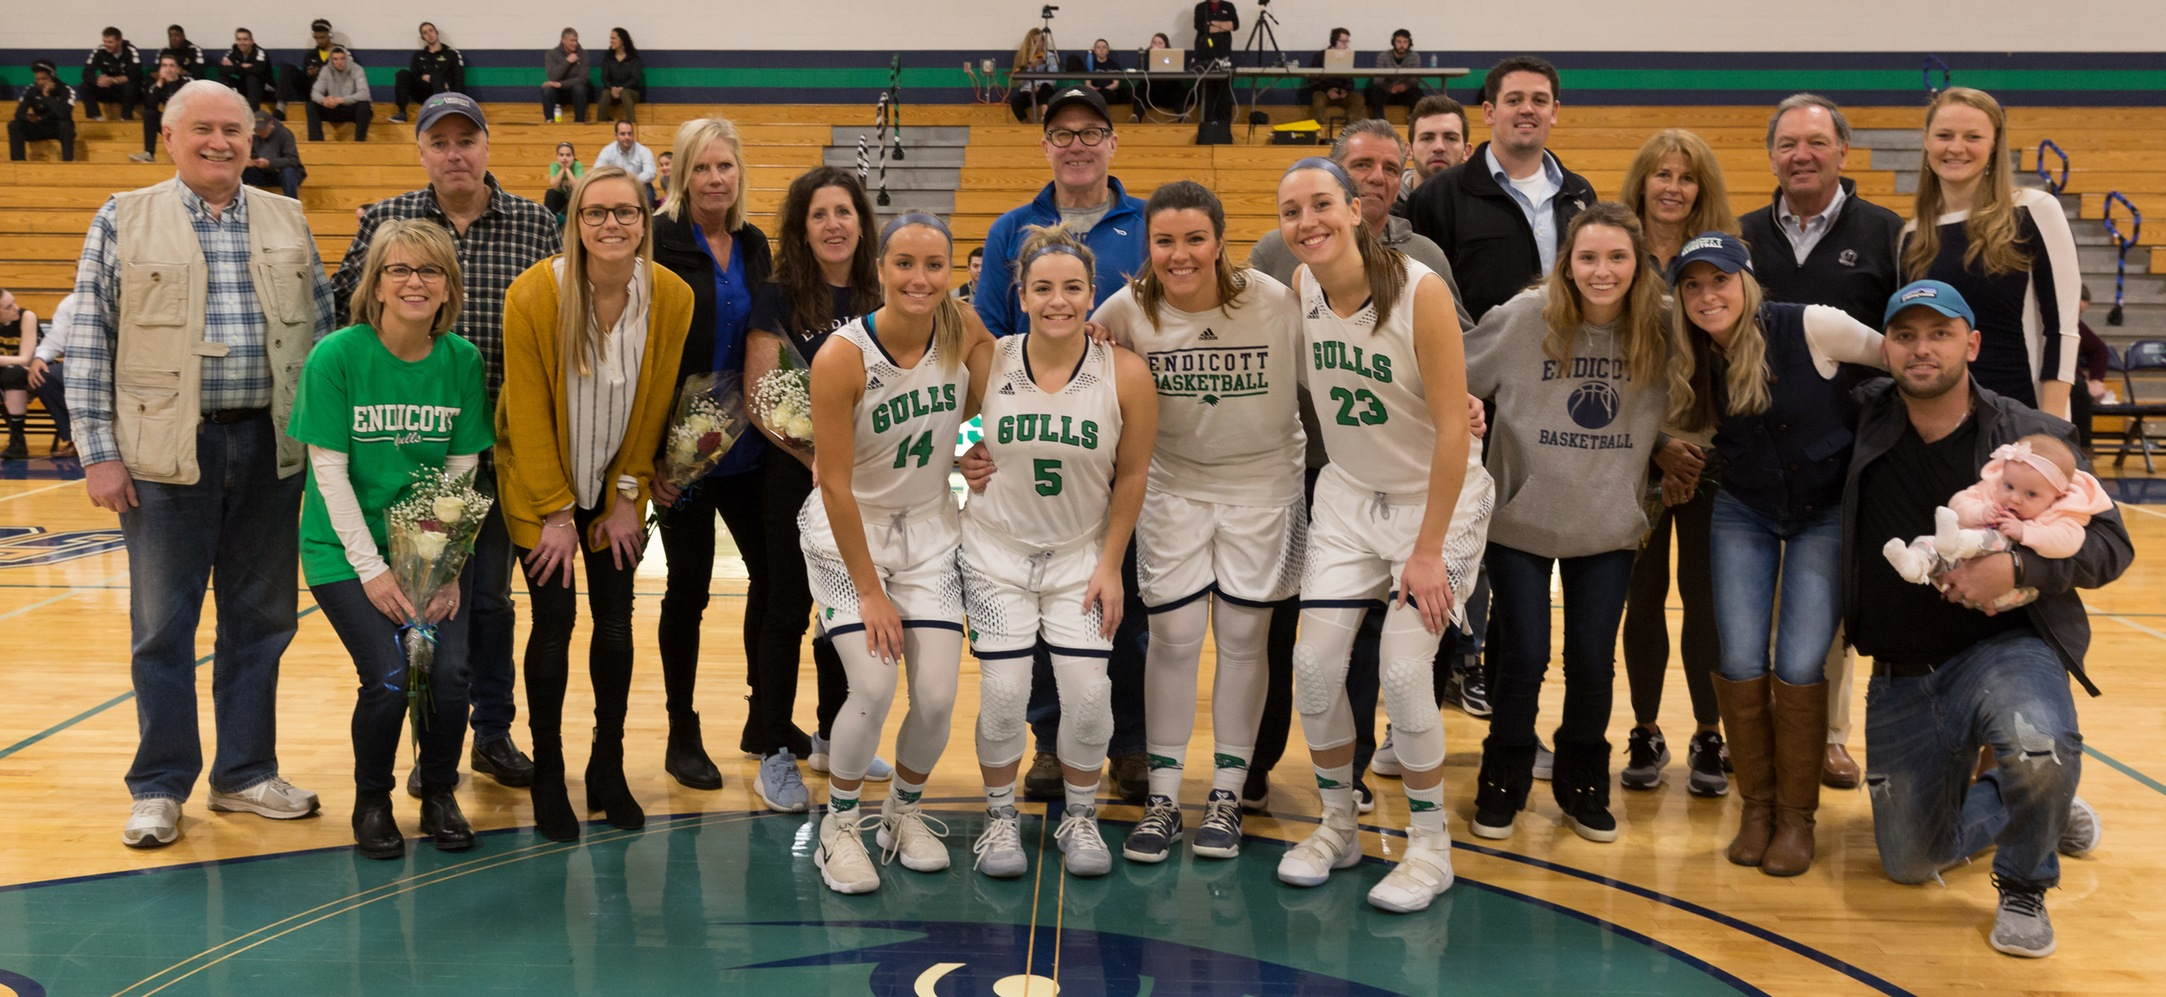 Endicott women's basketball senior day picture.